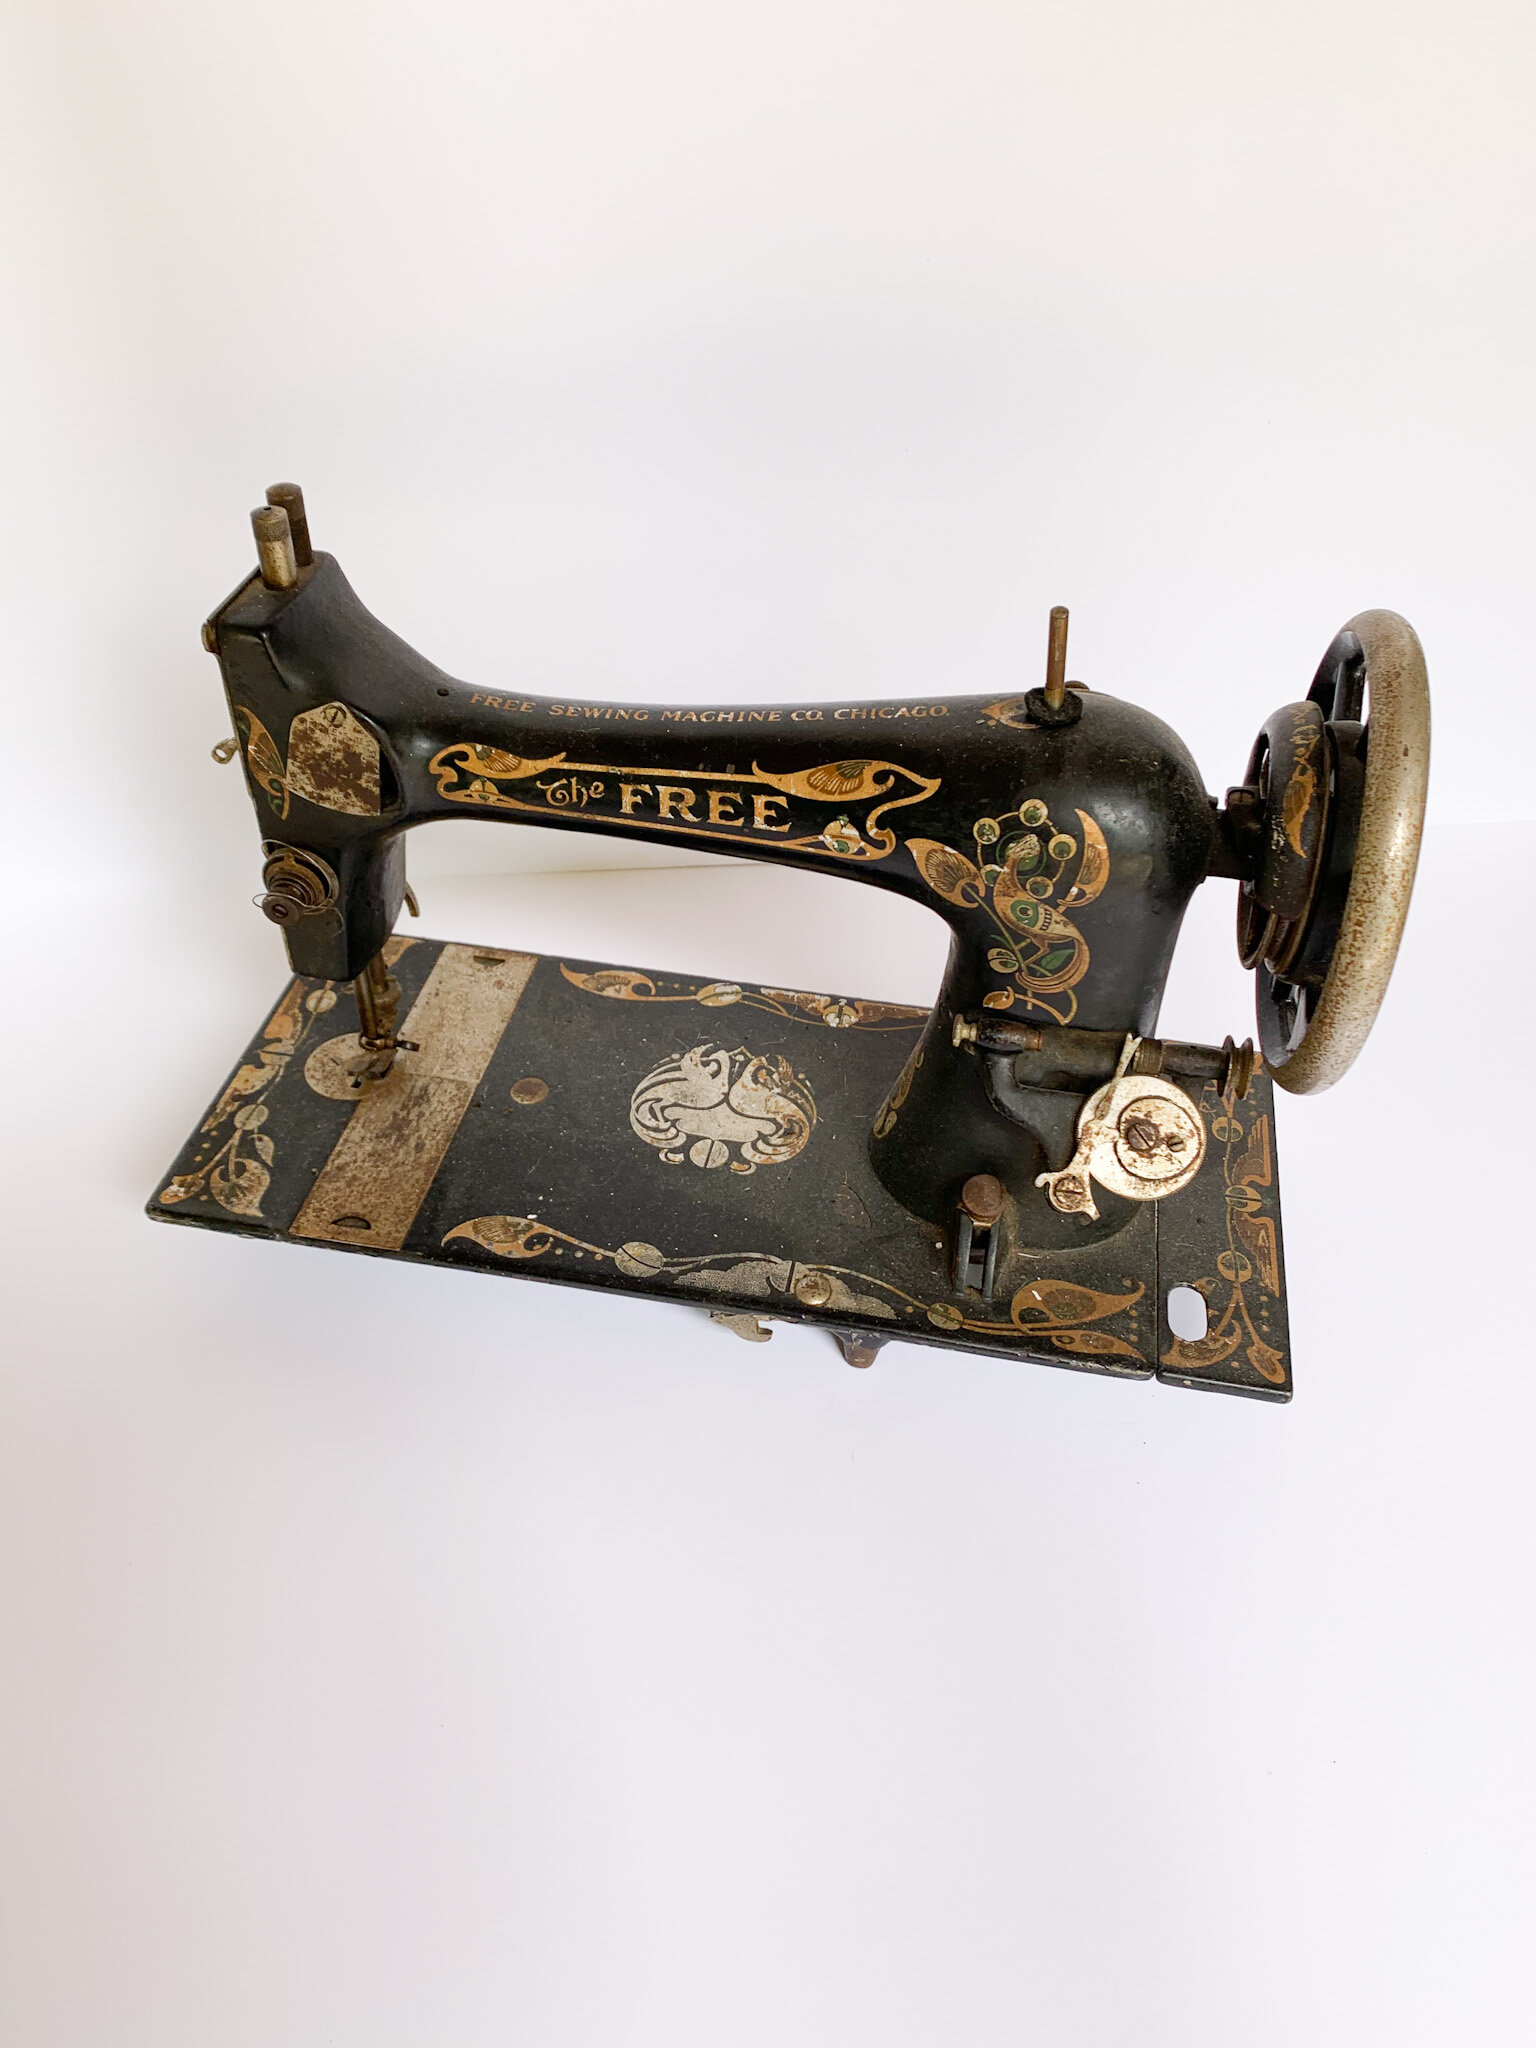 Free Sewing Machine : sewing, machine, Vintage, Sewing, Machine, Chicago, Heirloomed, Linen, Aprons,, Tabletop, Meaningful, Gifts